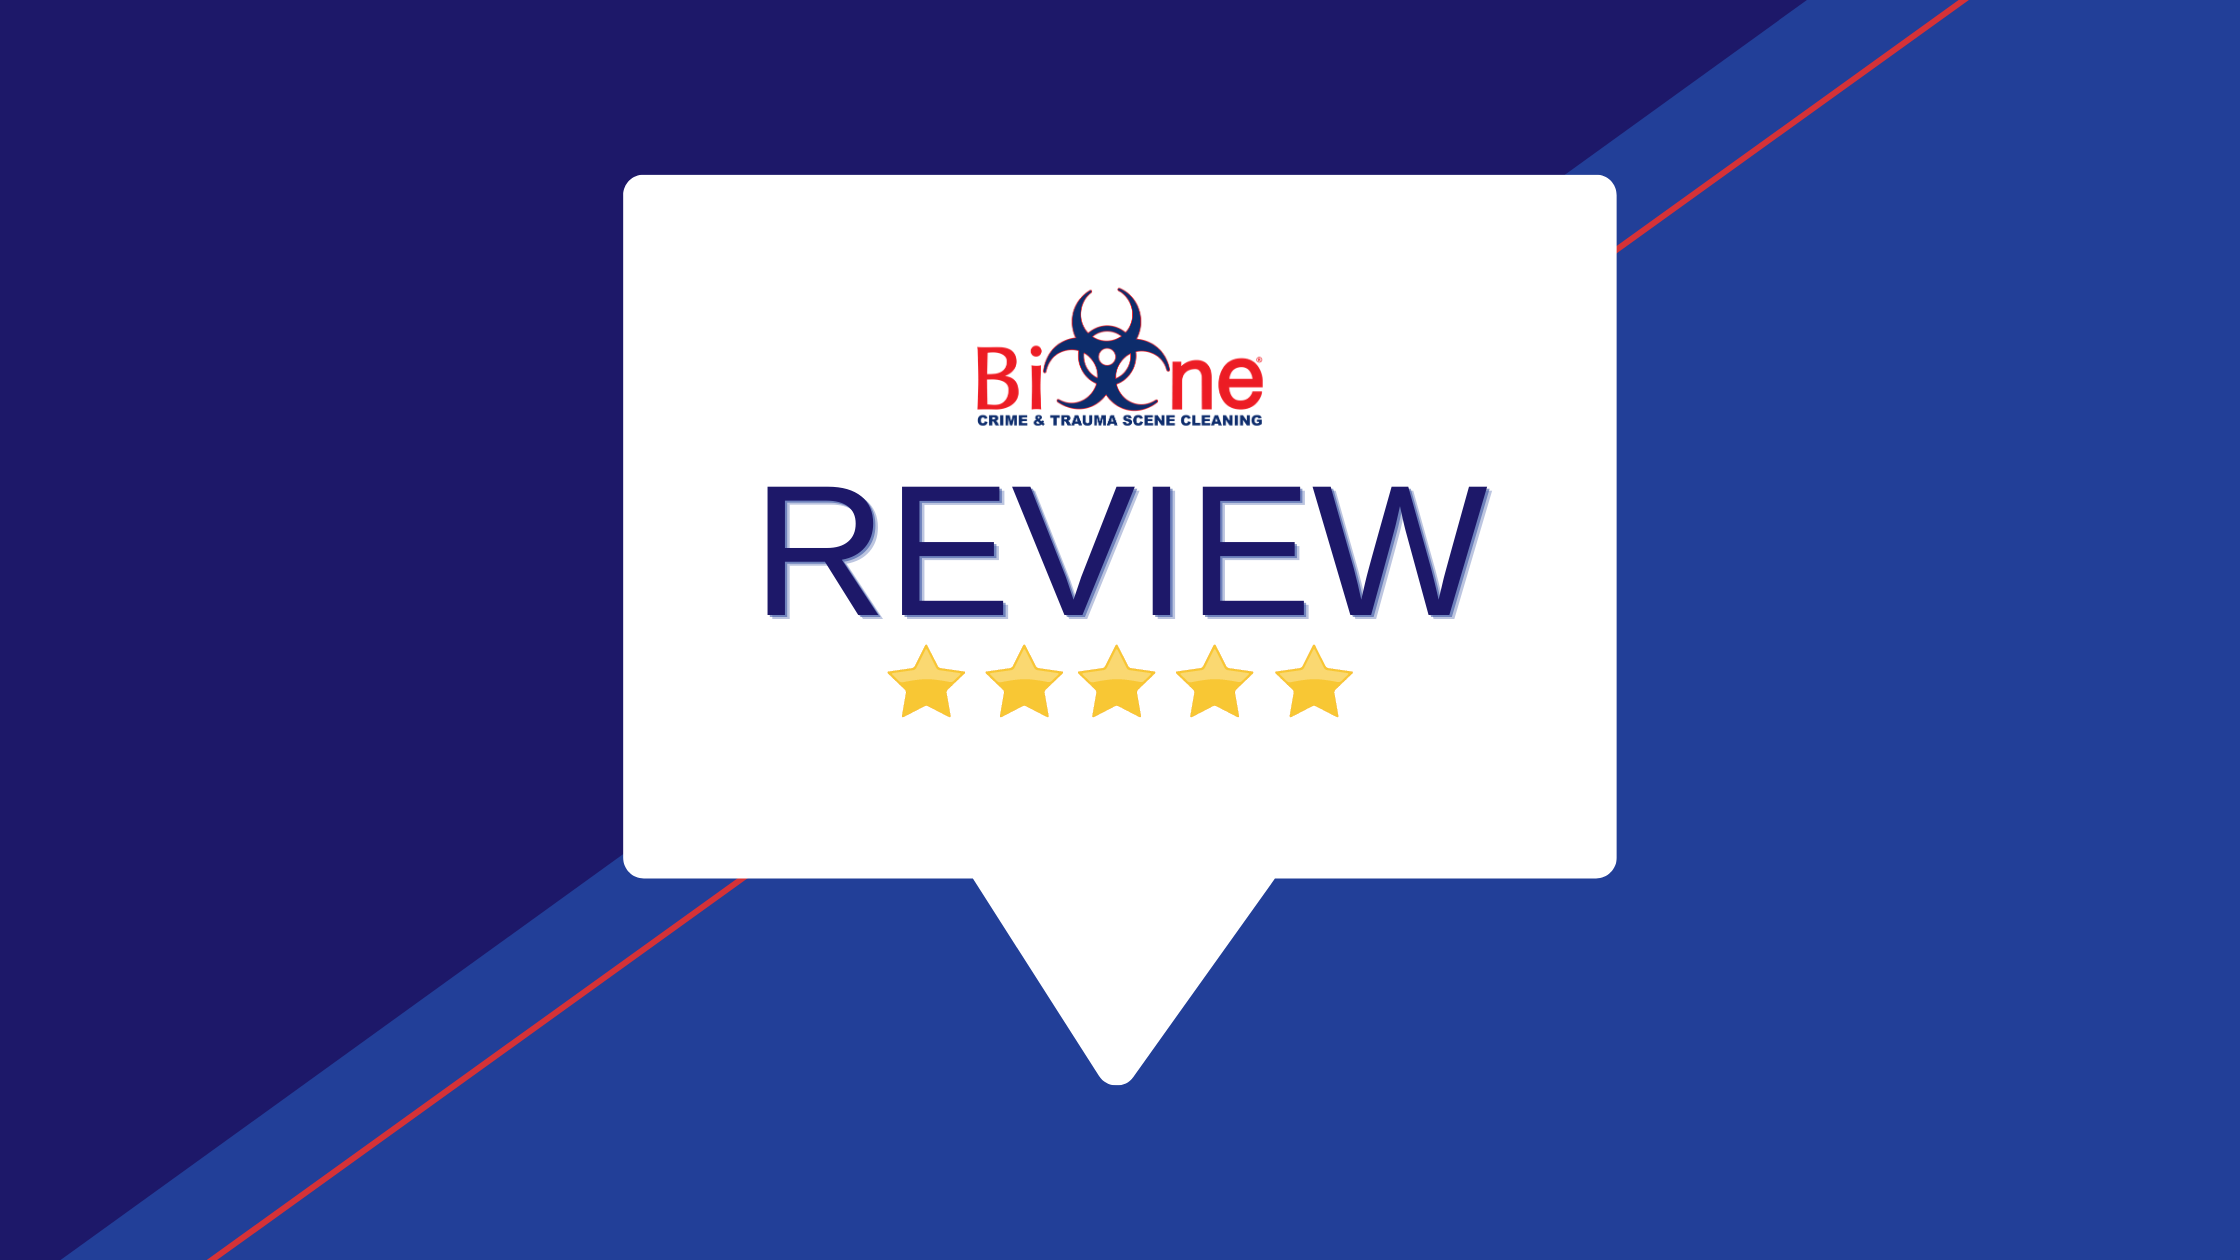 Bio-One Customer Review